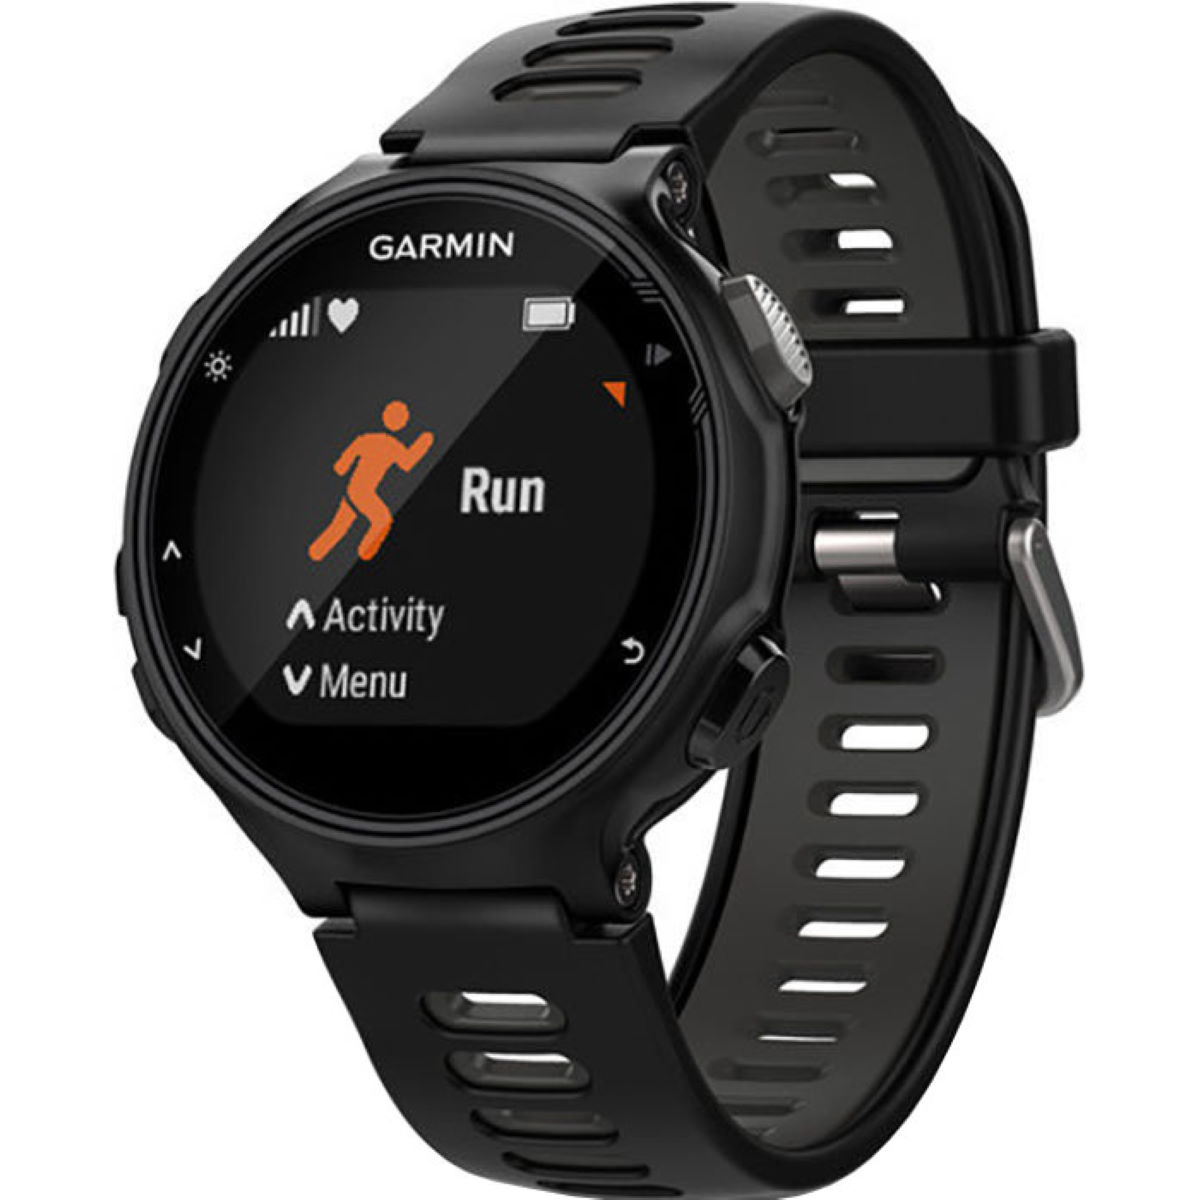 Garmin Garmin Forerunner 735XT Multisport GPS Watch   Watches